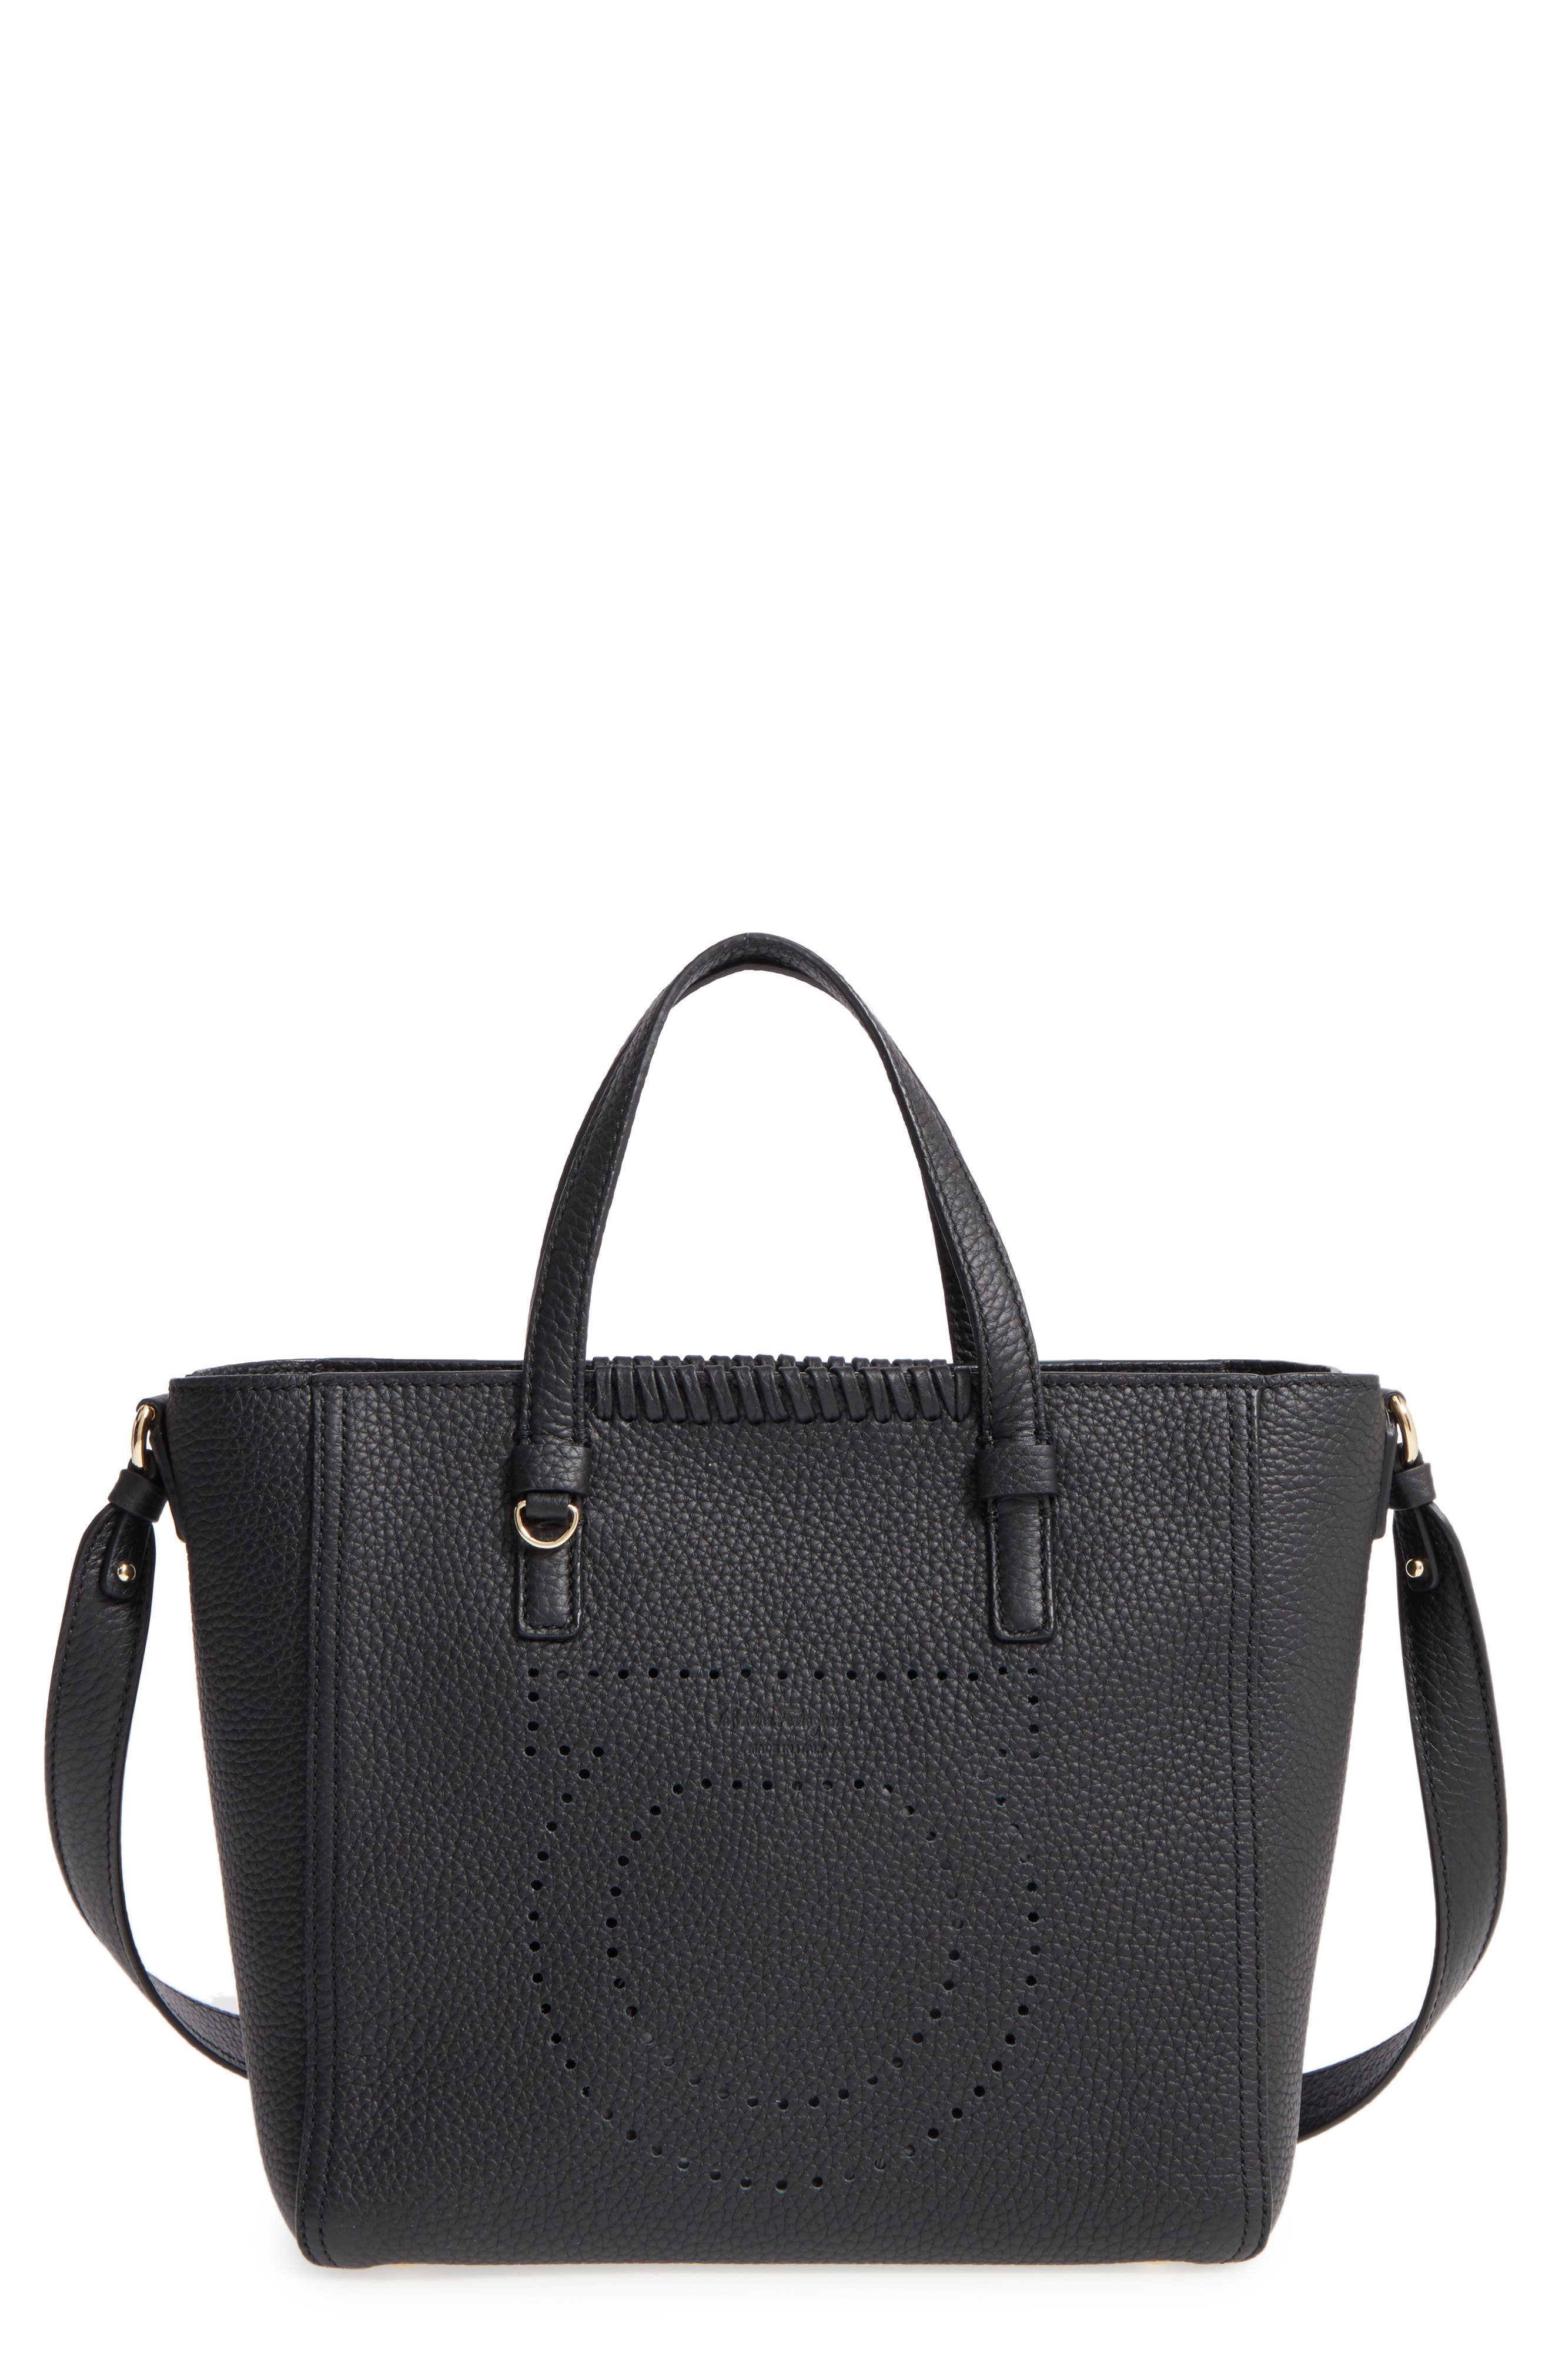 Salvatore Ferragamo Small Pebbled Leather Tote